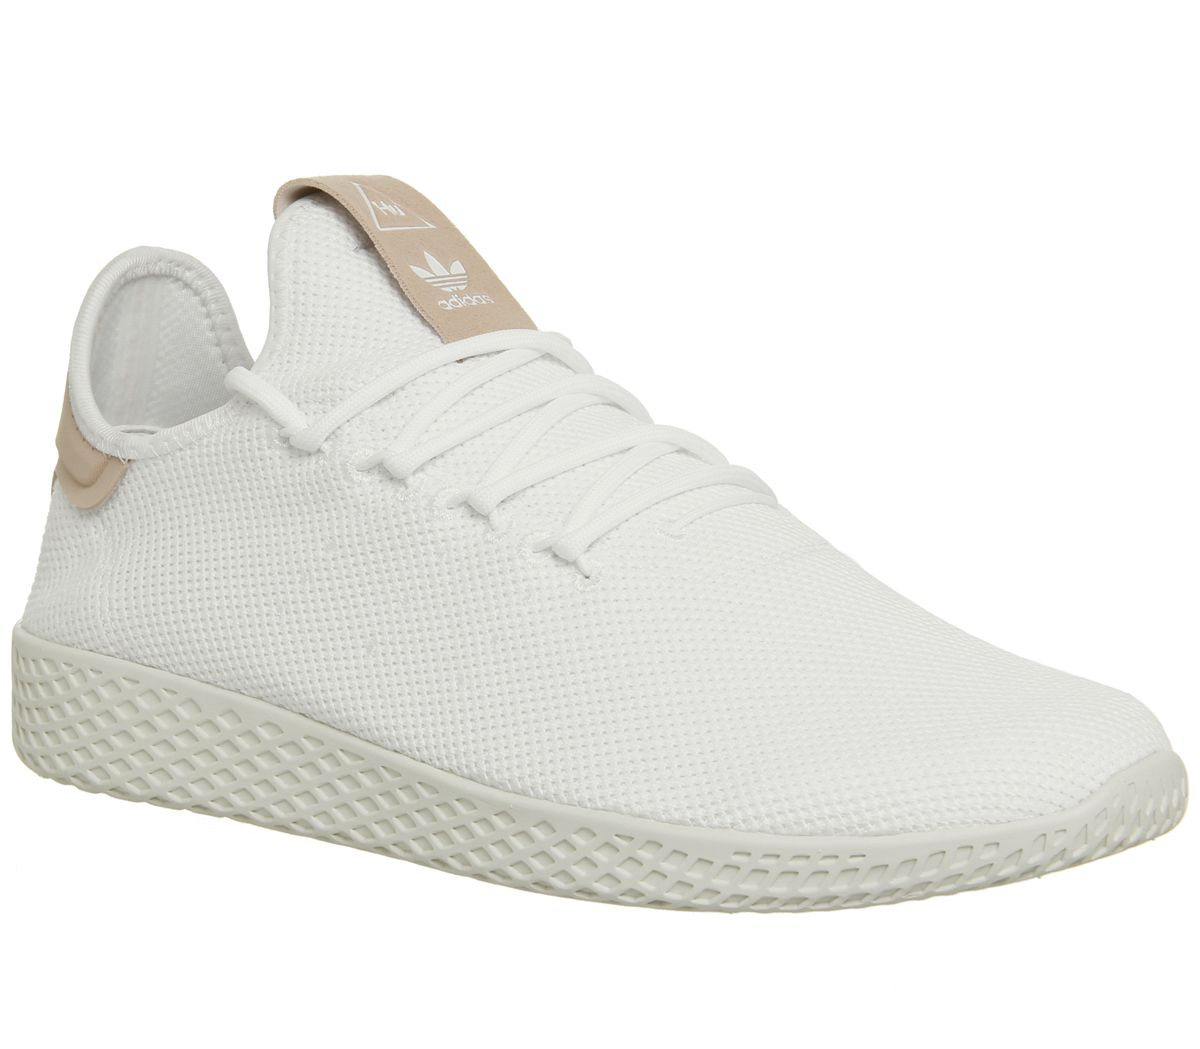 Sentinel Womens Adidas White Textile Lace up Trainers Size UK 10  Ex-Display ef1451f4f